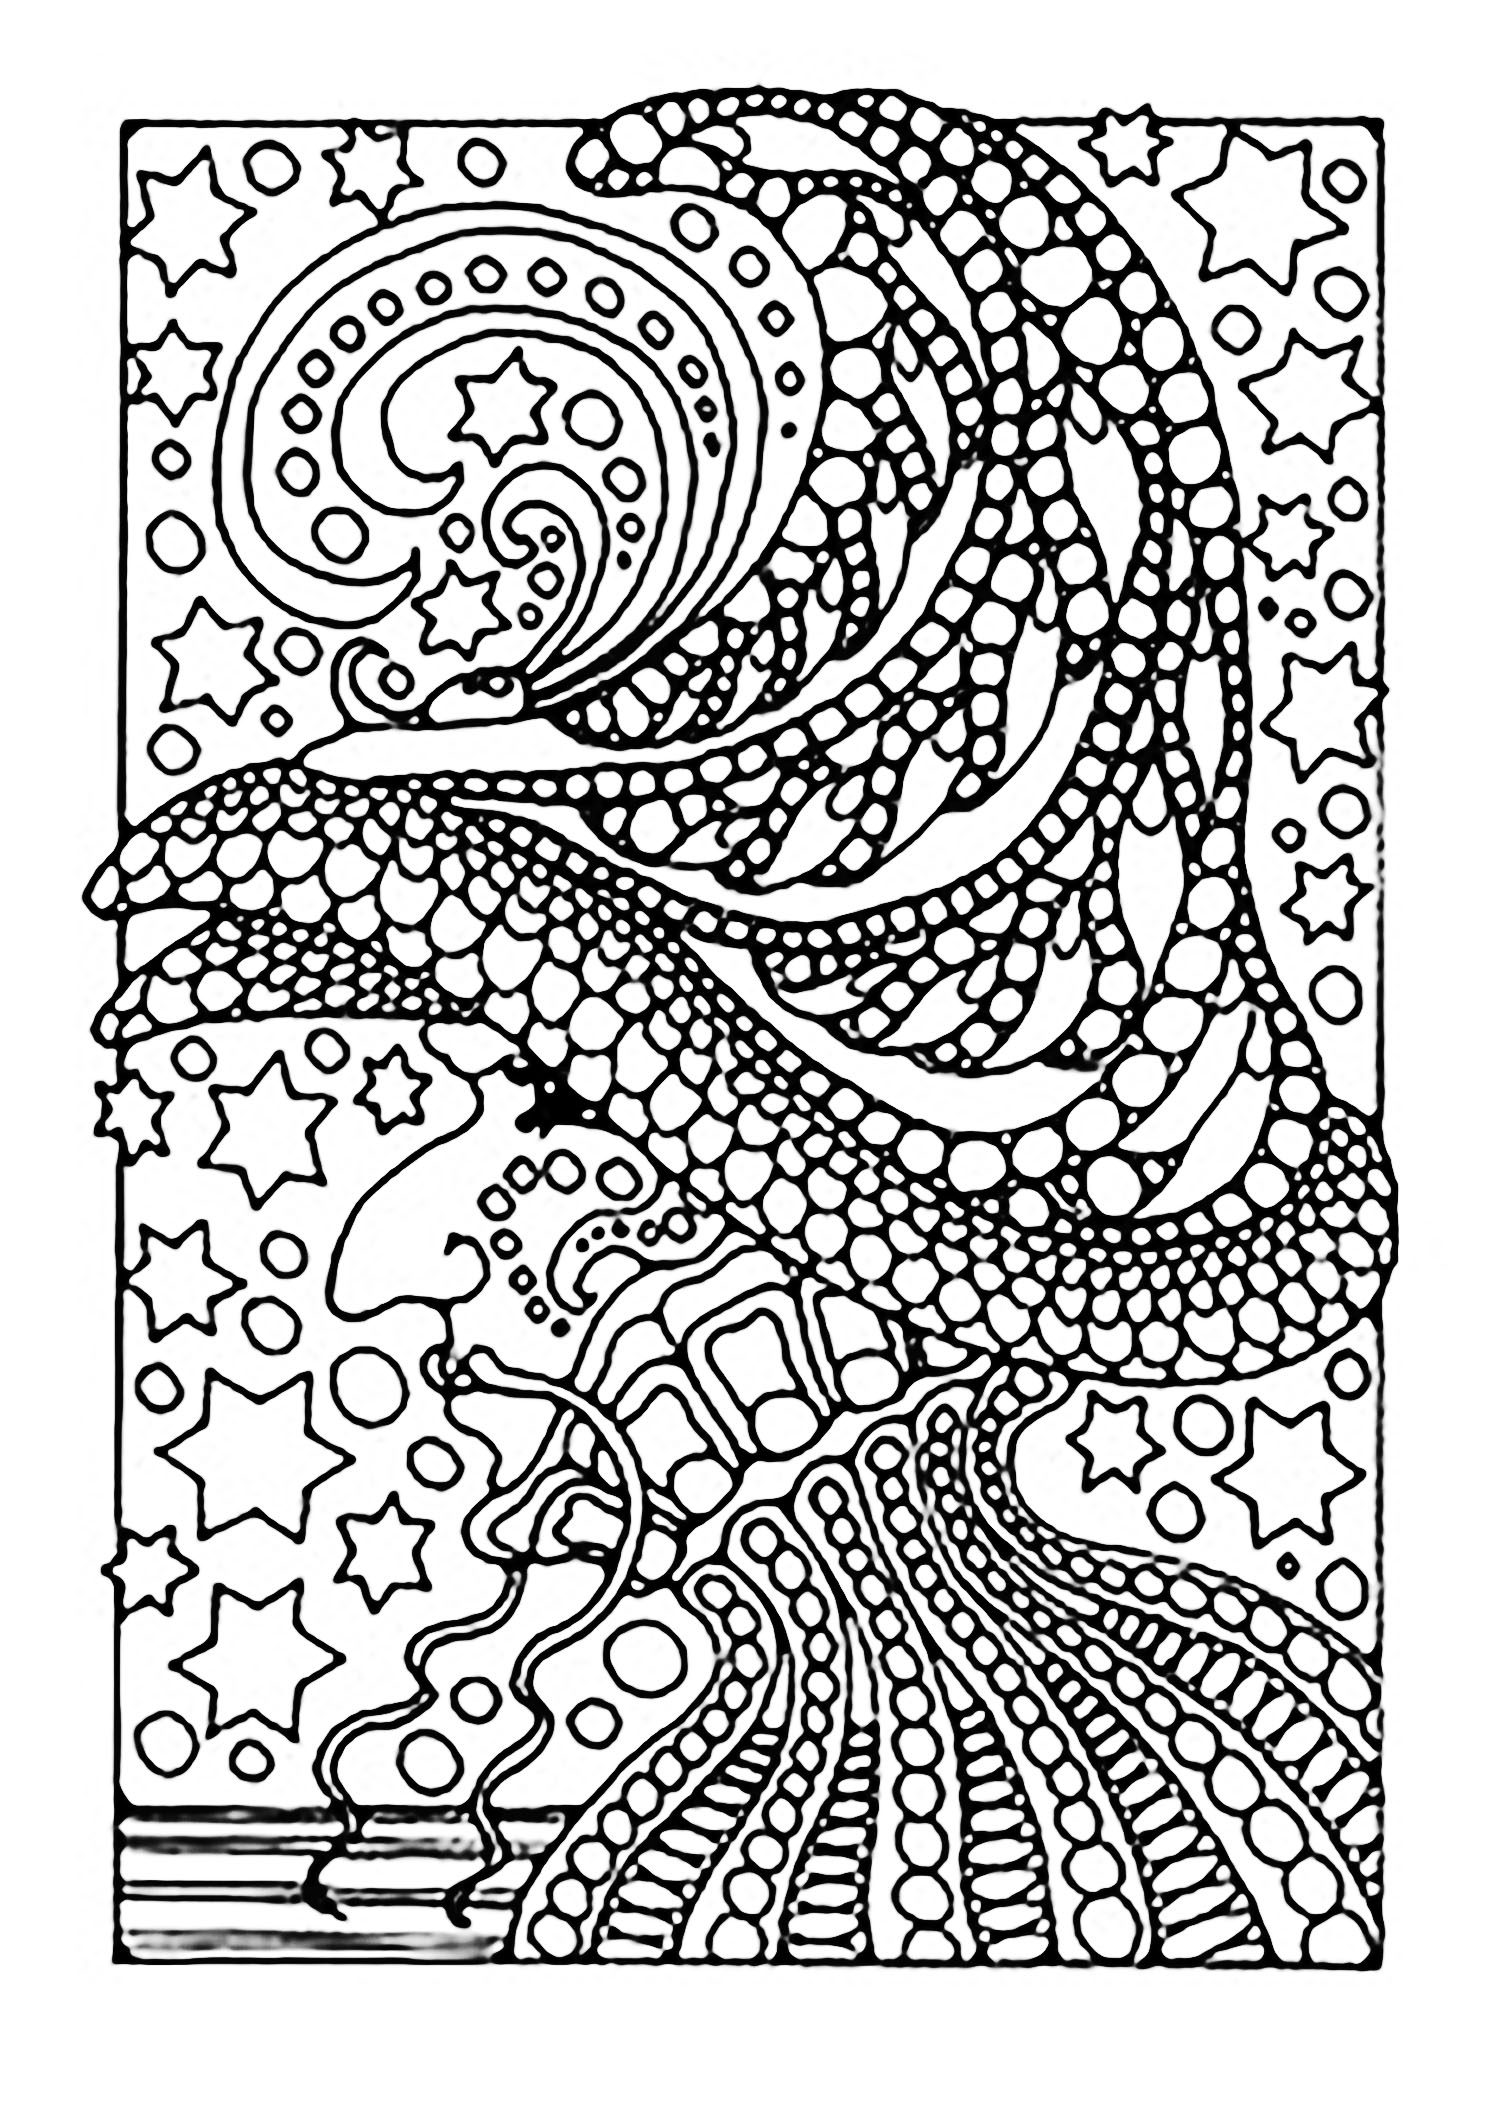 coloring printable witch printable witch pictures download them or print coloring printable witch